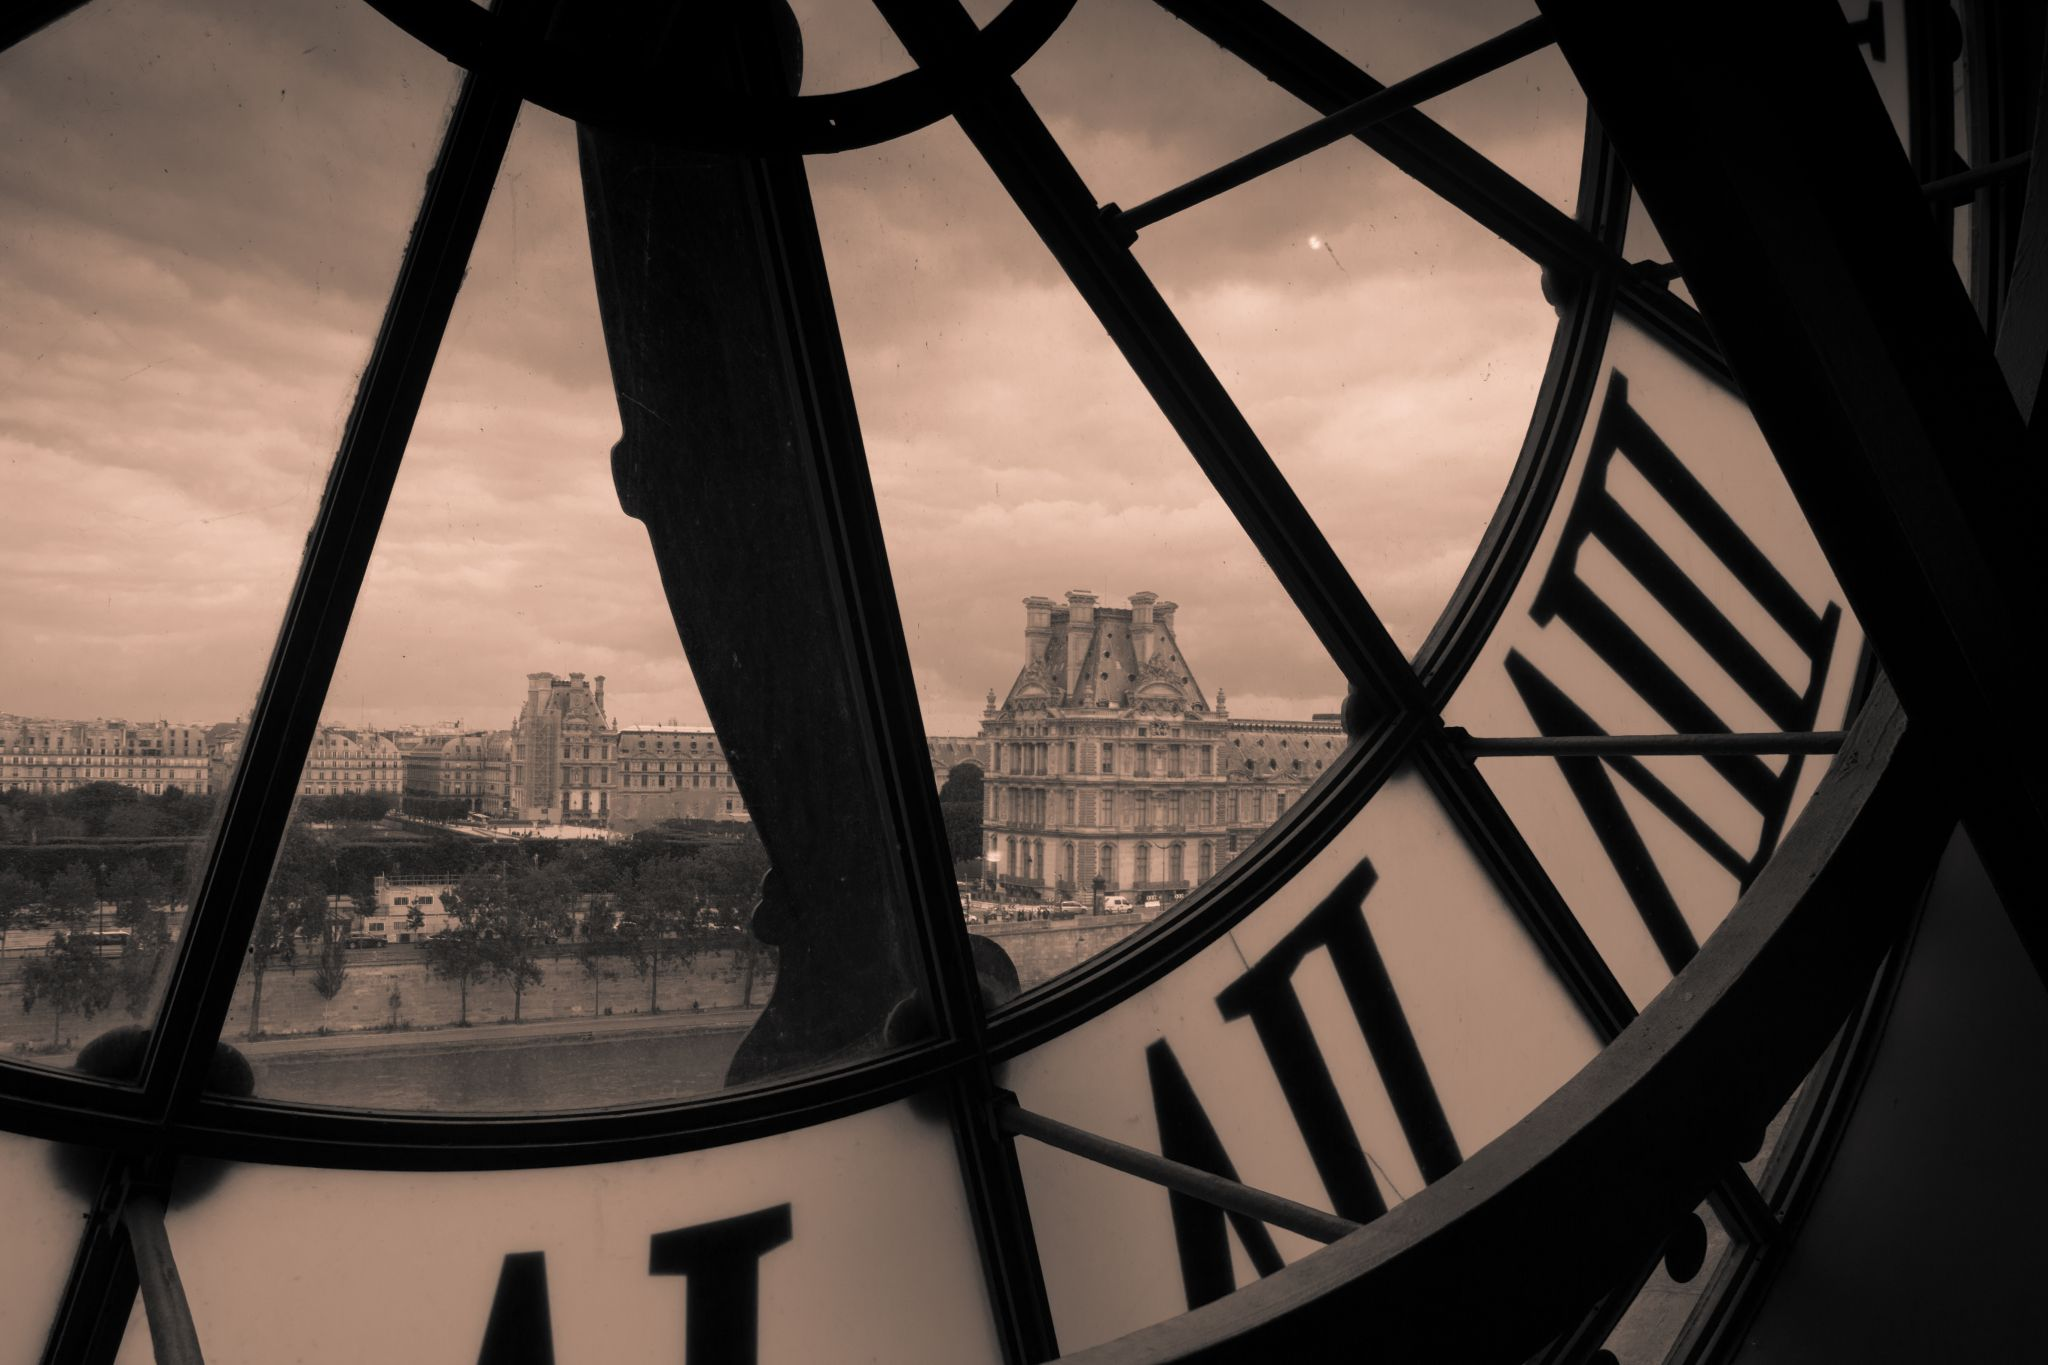 View from 5th floor of Musee d'Orsay, France